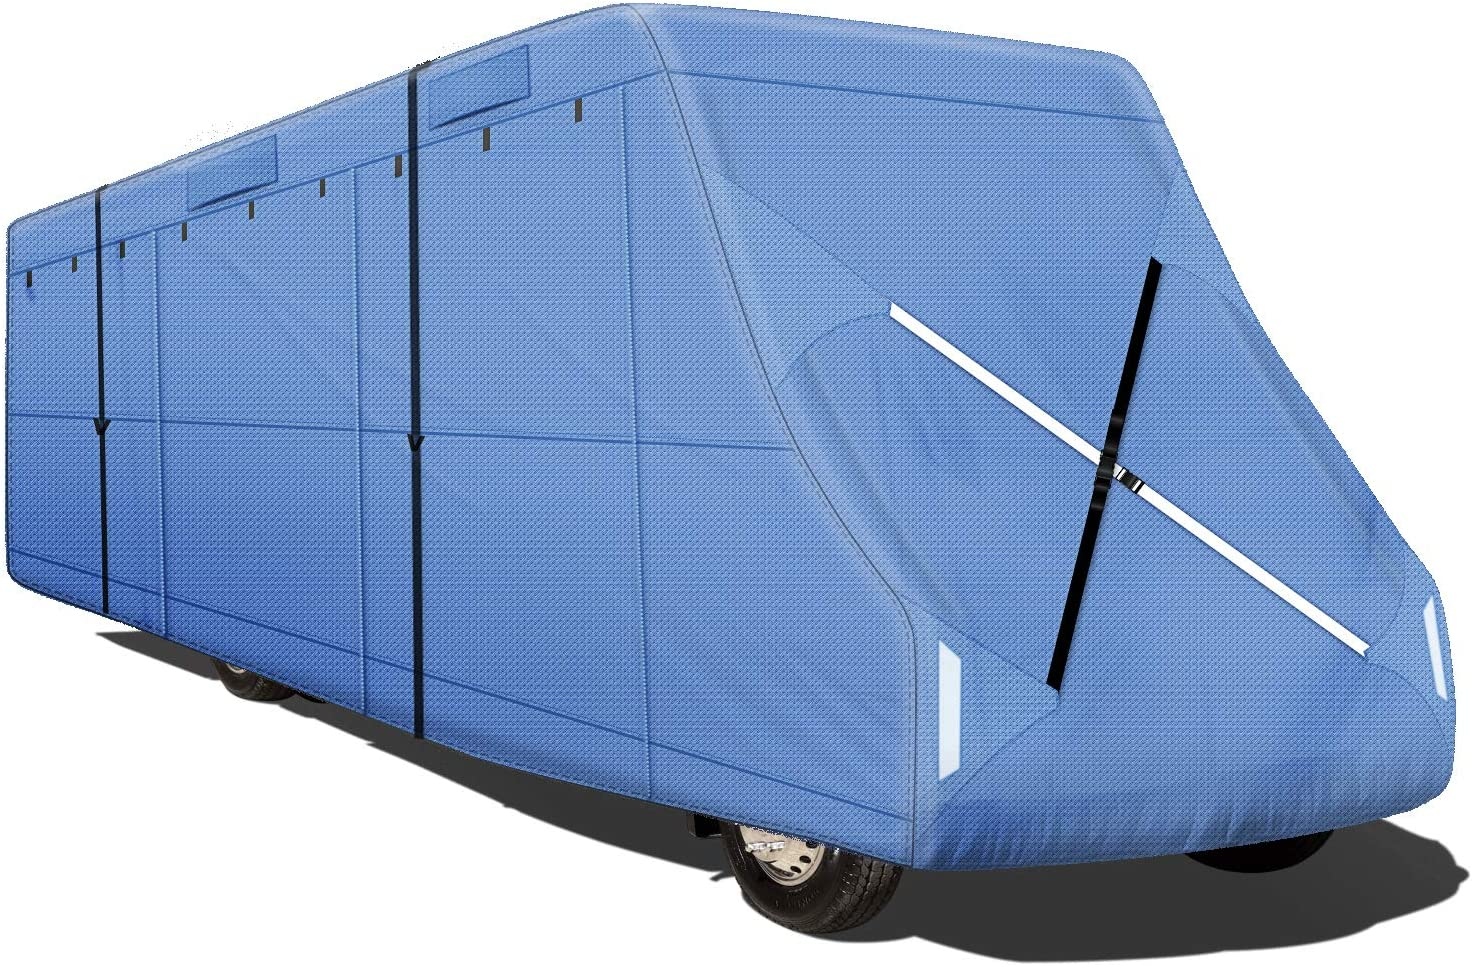 Leader Accessories Easy Setup Class C Cover Windproof Upgrade RV Cover Fits 35-38 Motorhome with Adhesive Repair Patch